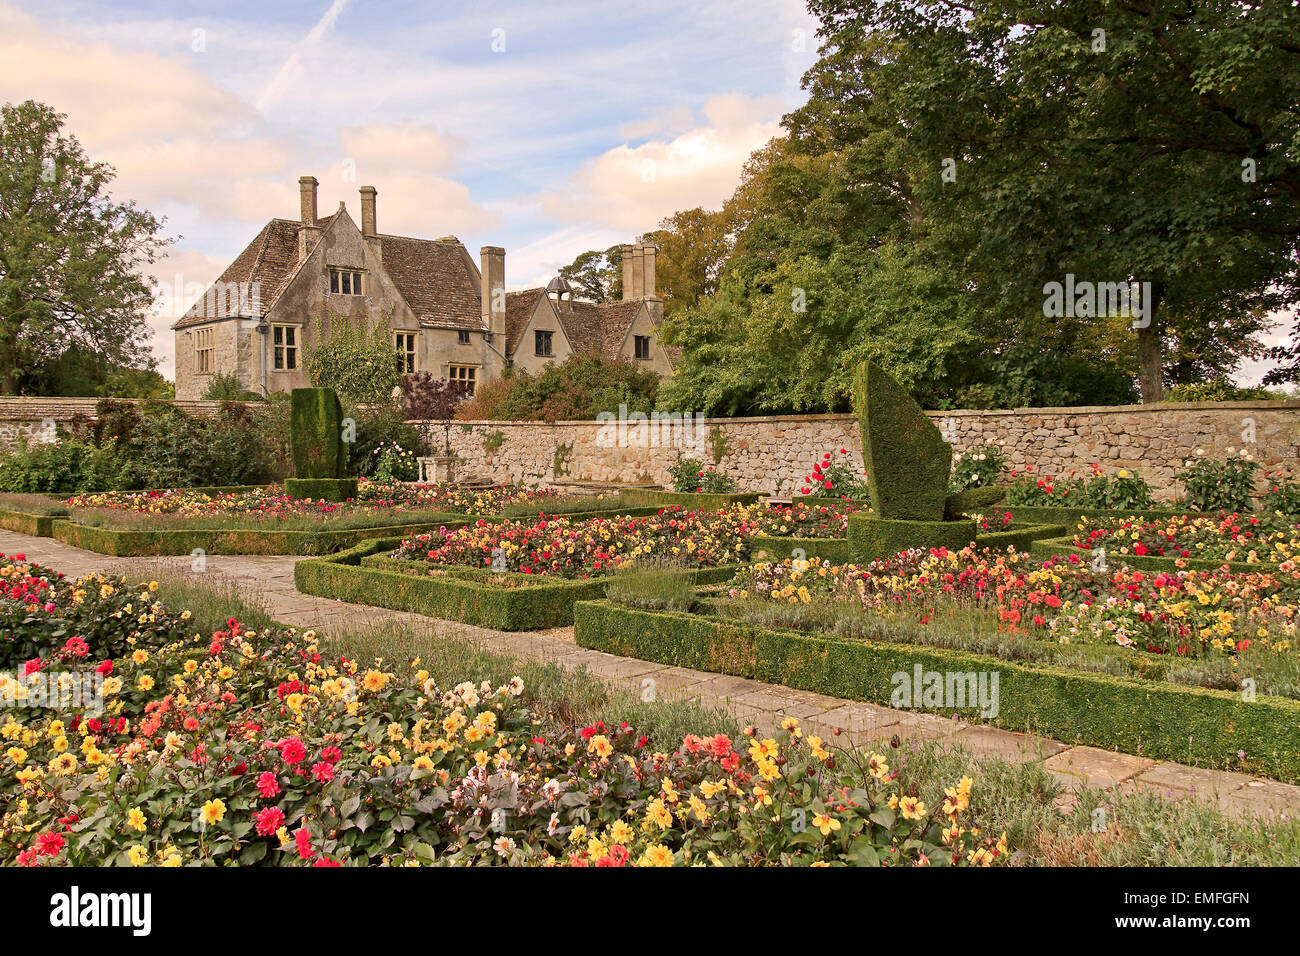 UK Wiltshire Avebury Enclosed Garden   Stock Image